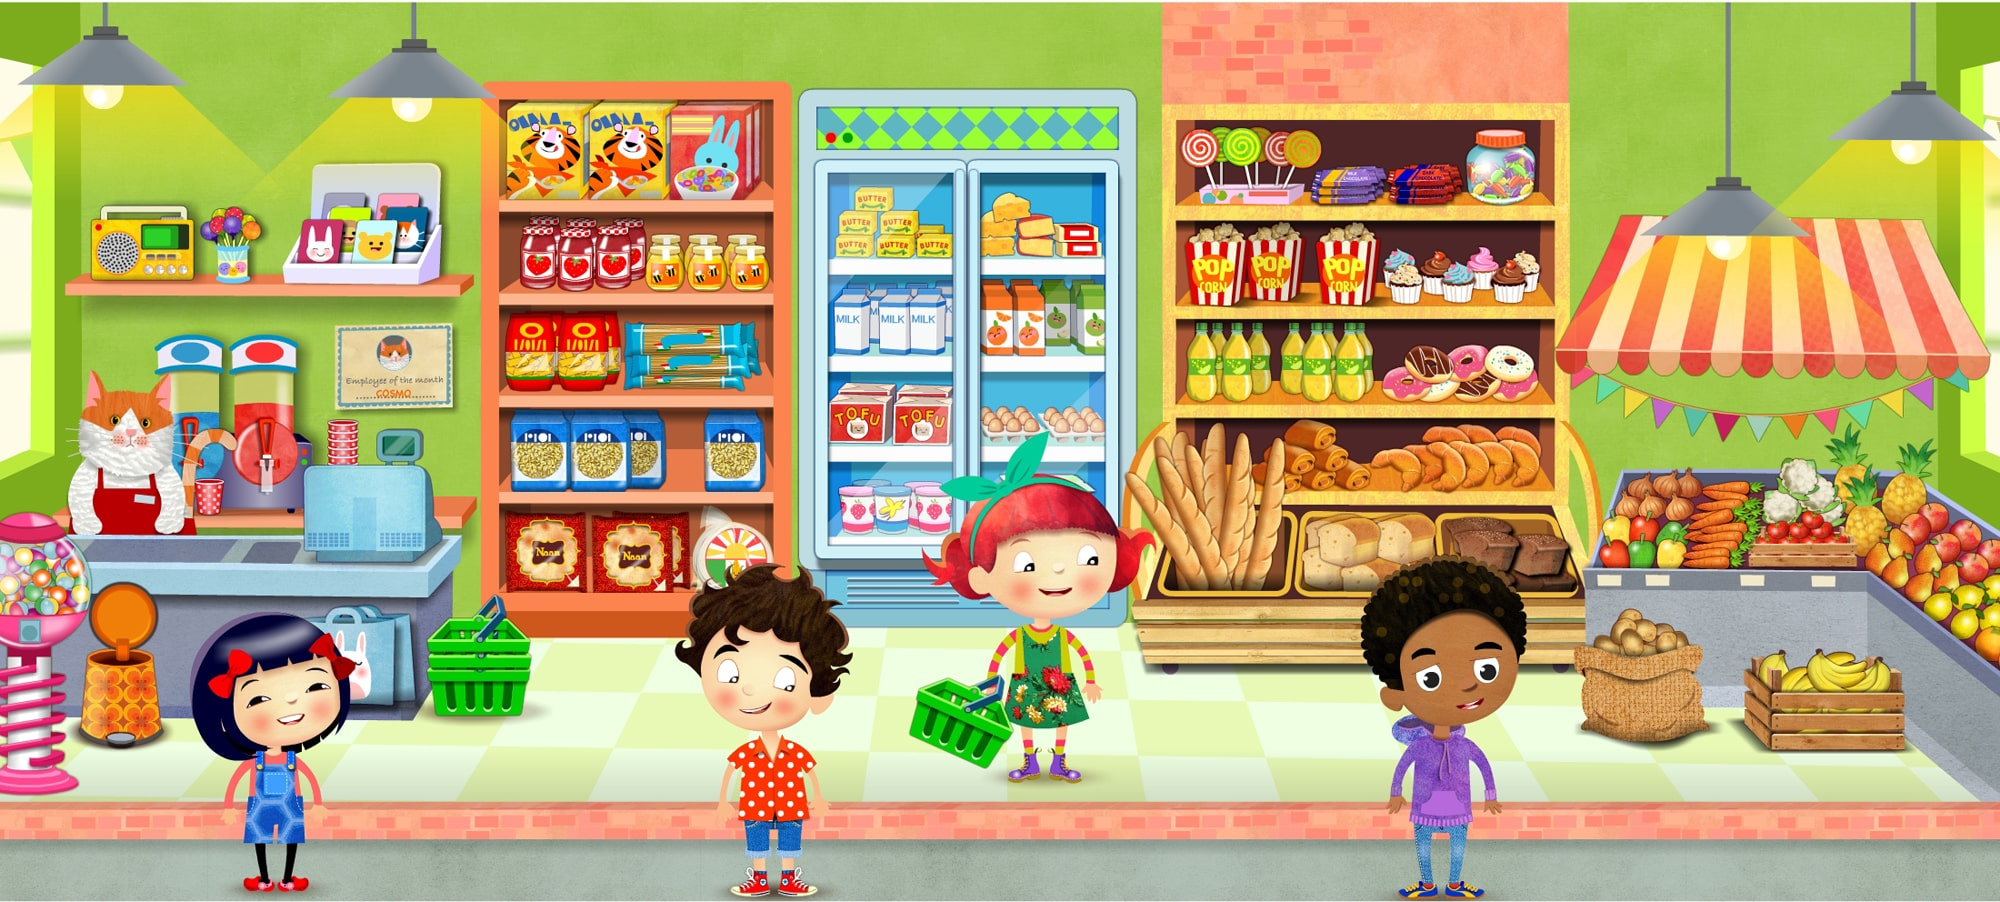 Kids shopping app illustration